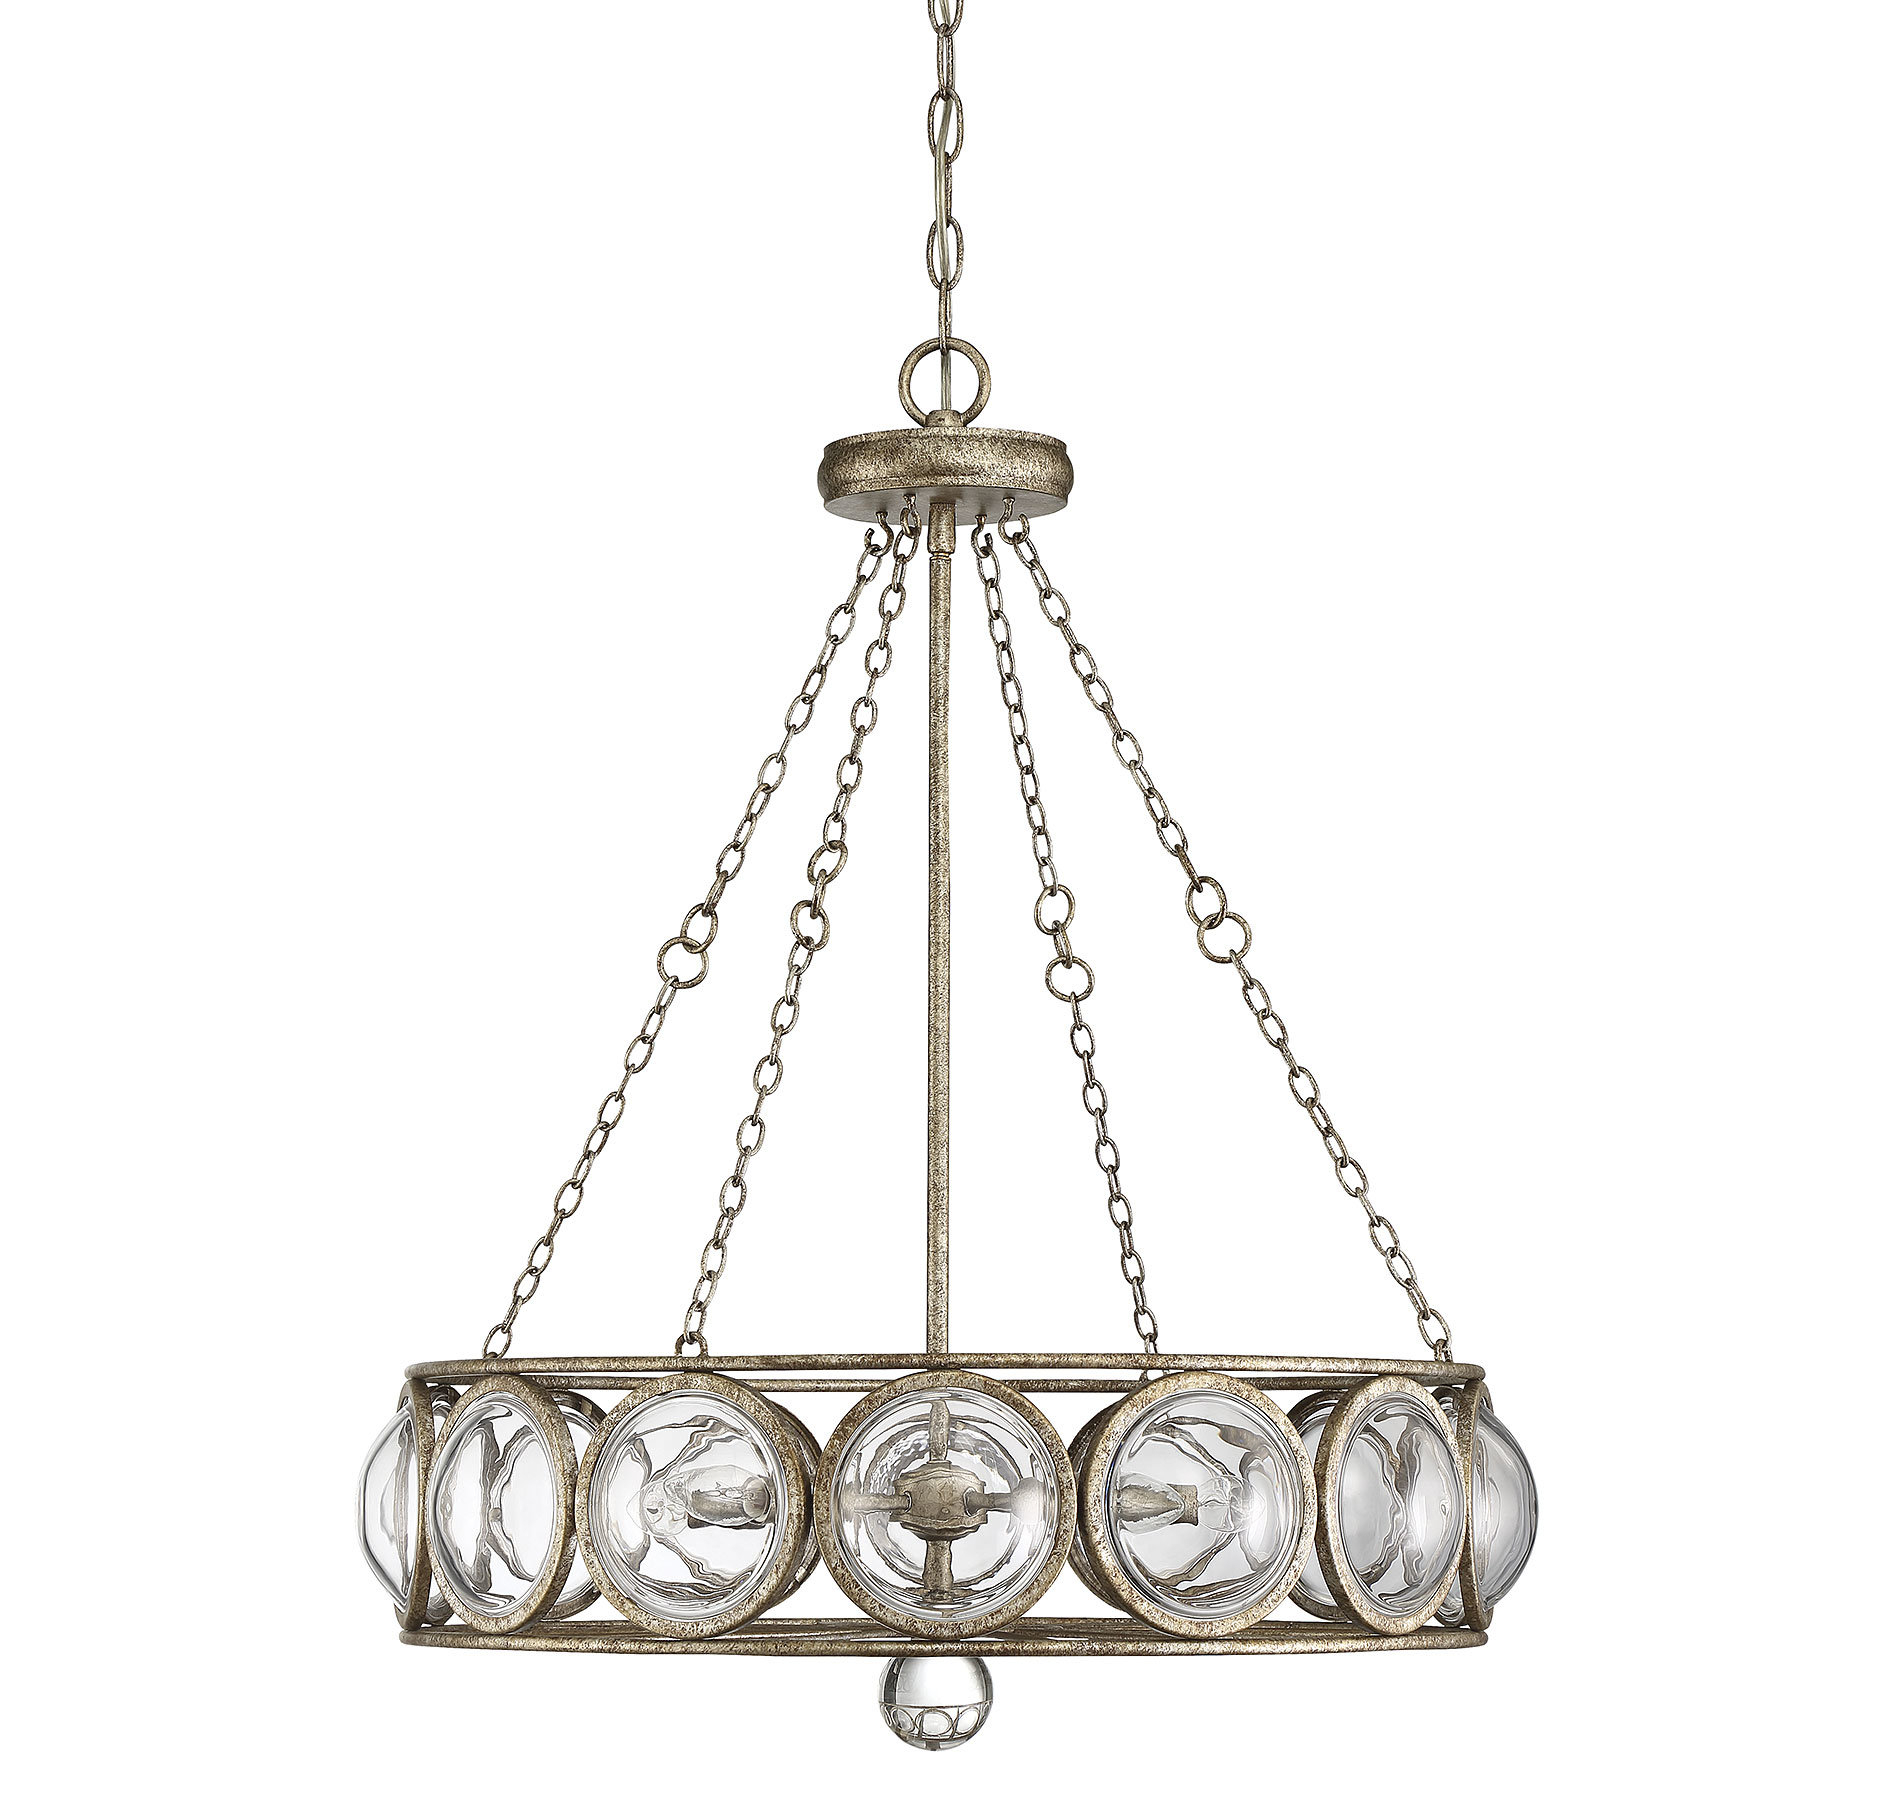 Nellie 5 Light Drum Chandelier Regarding Hermione 5 Light Drum Chandeliers (View 8 of 30)